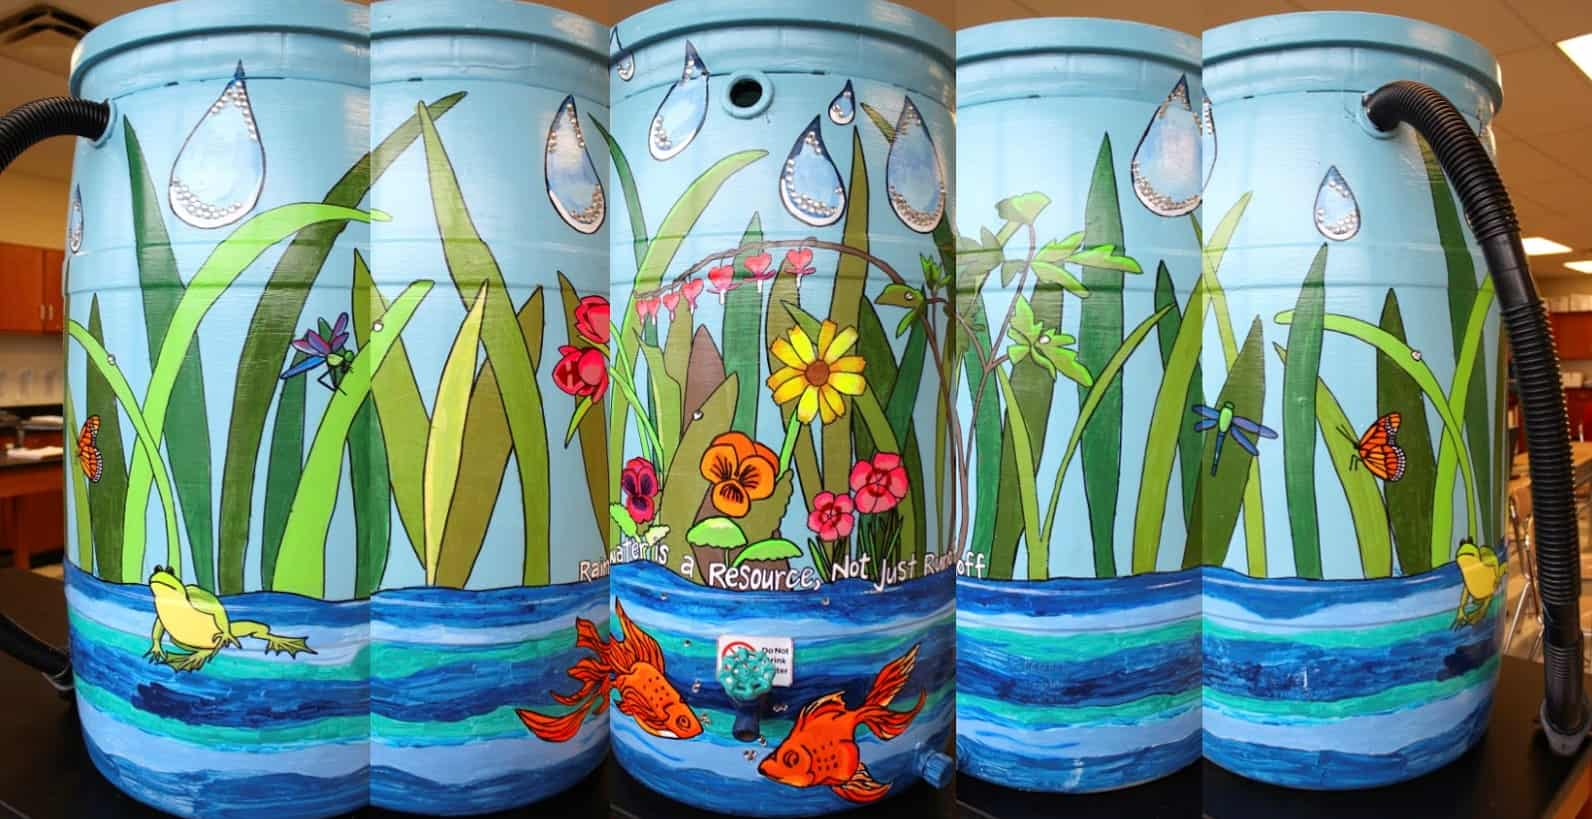 personalized rain barrels